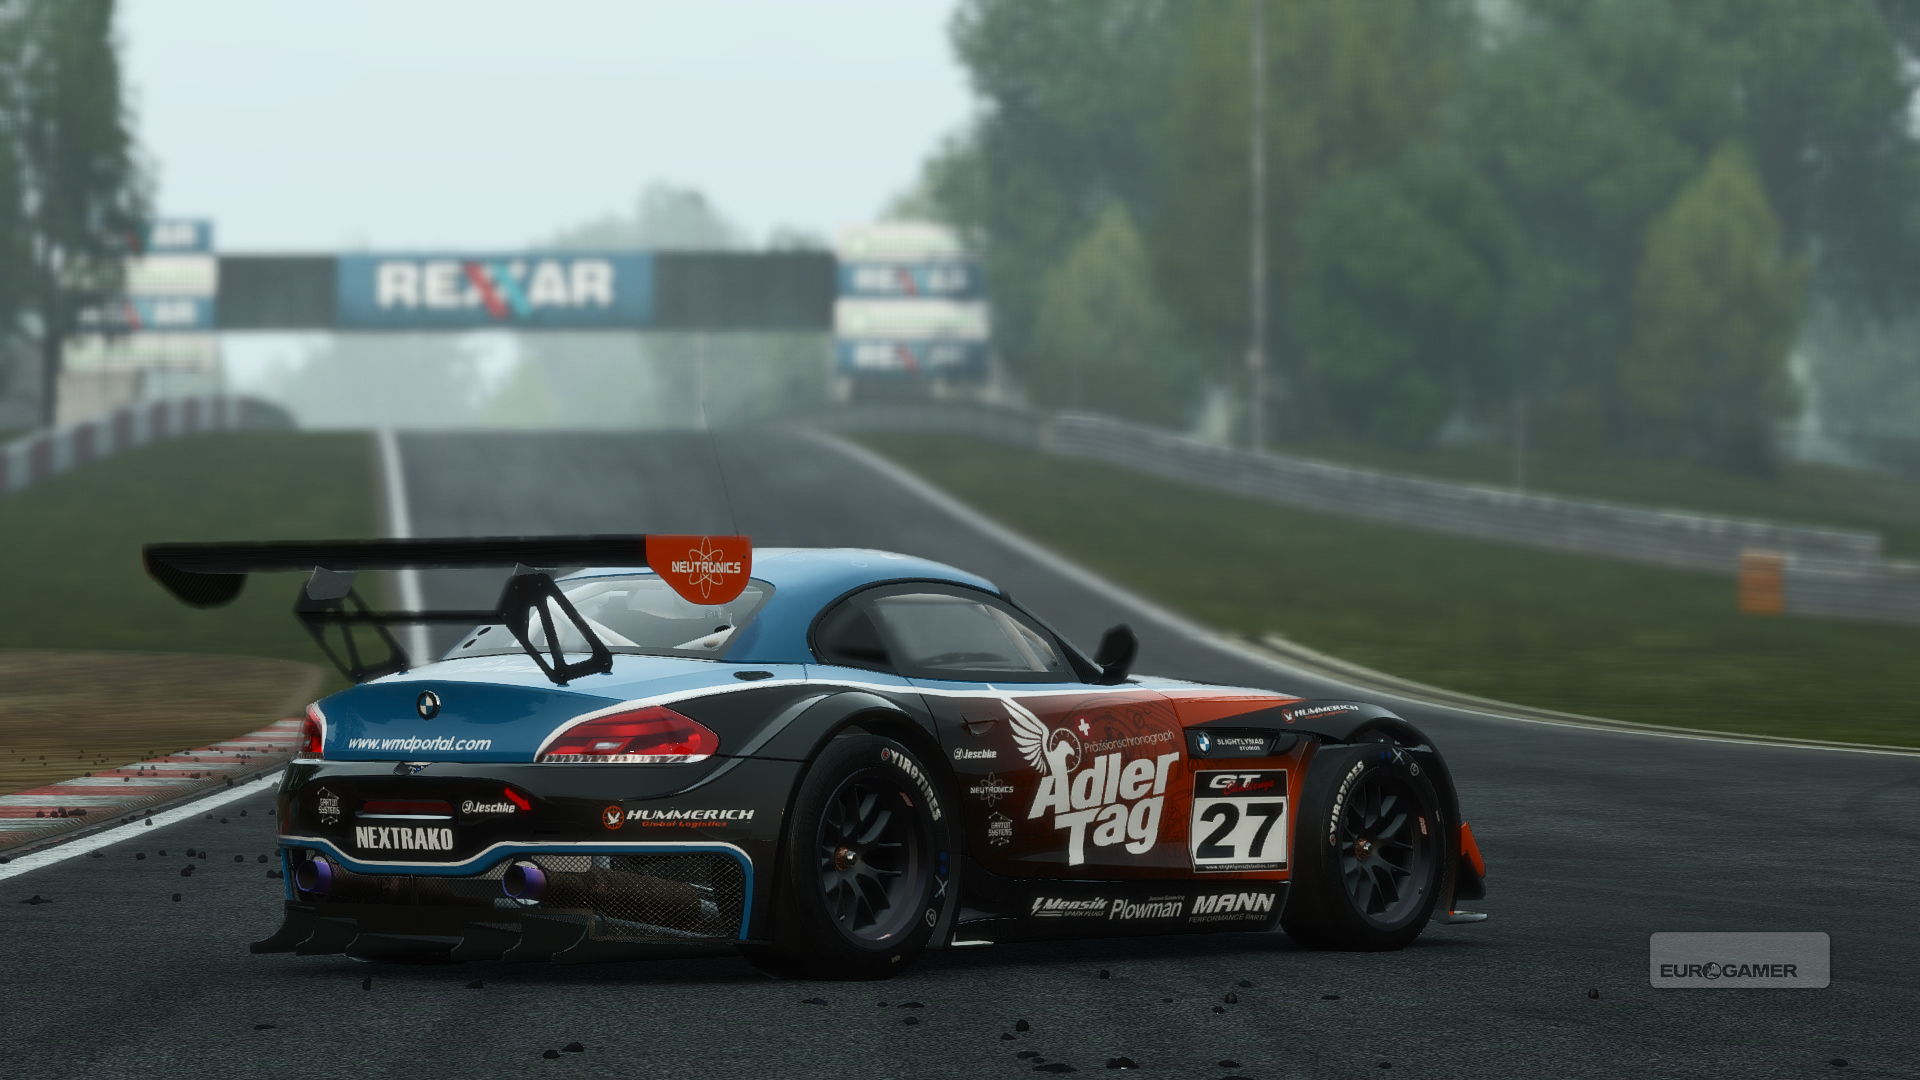 Project cars hd wallpaper full hd pictures - Project cars 4k wallpaper ...